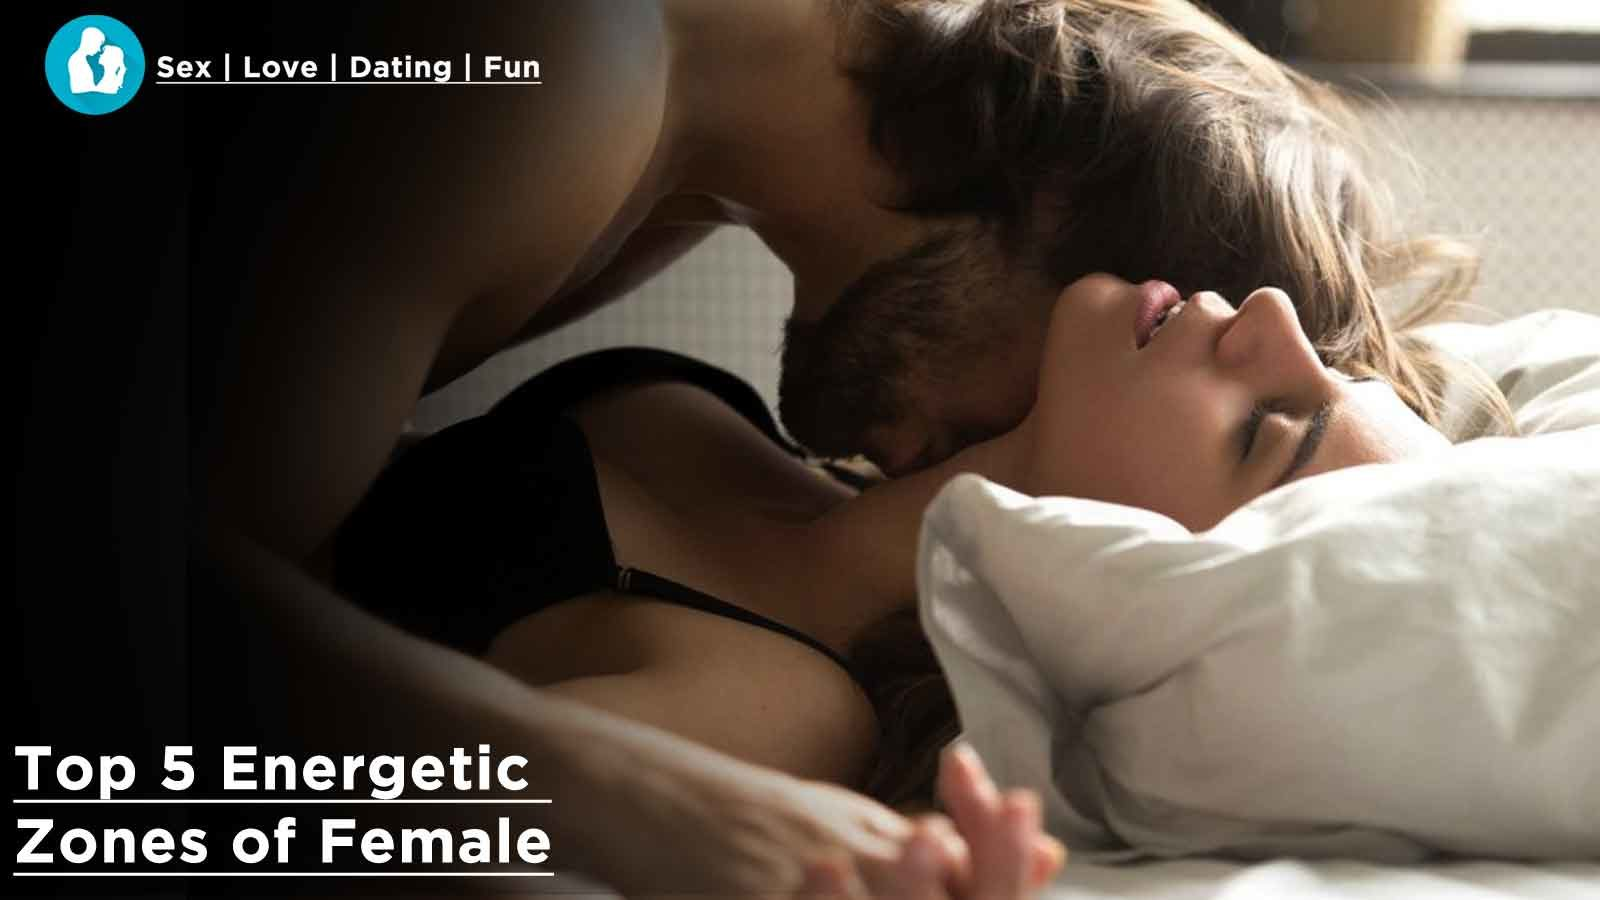 Top 5 Energetic Zones of Female, Which Excite them Most